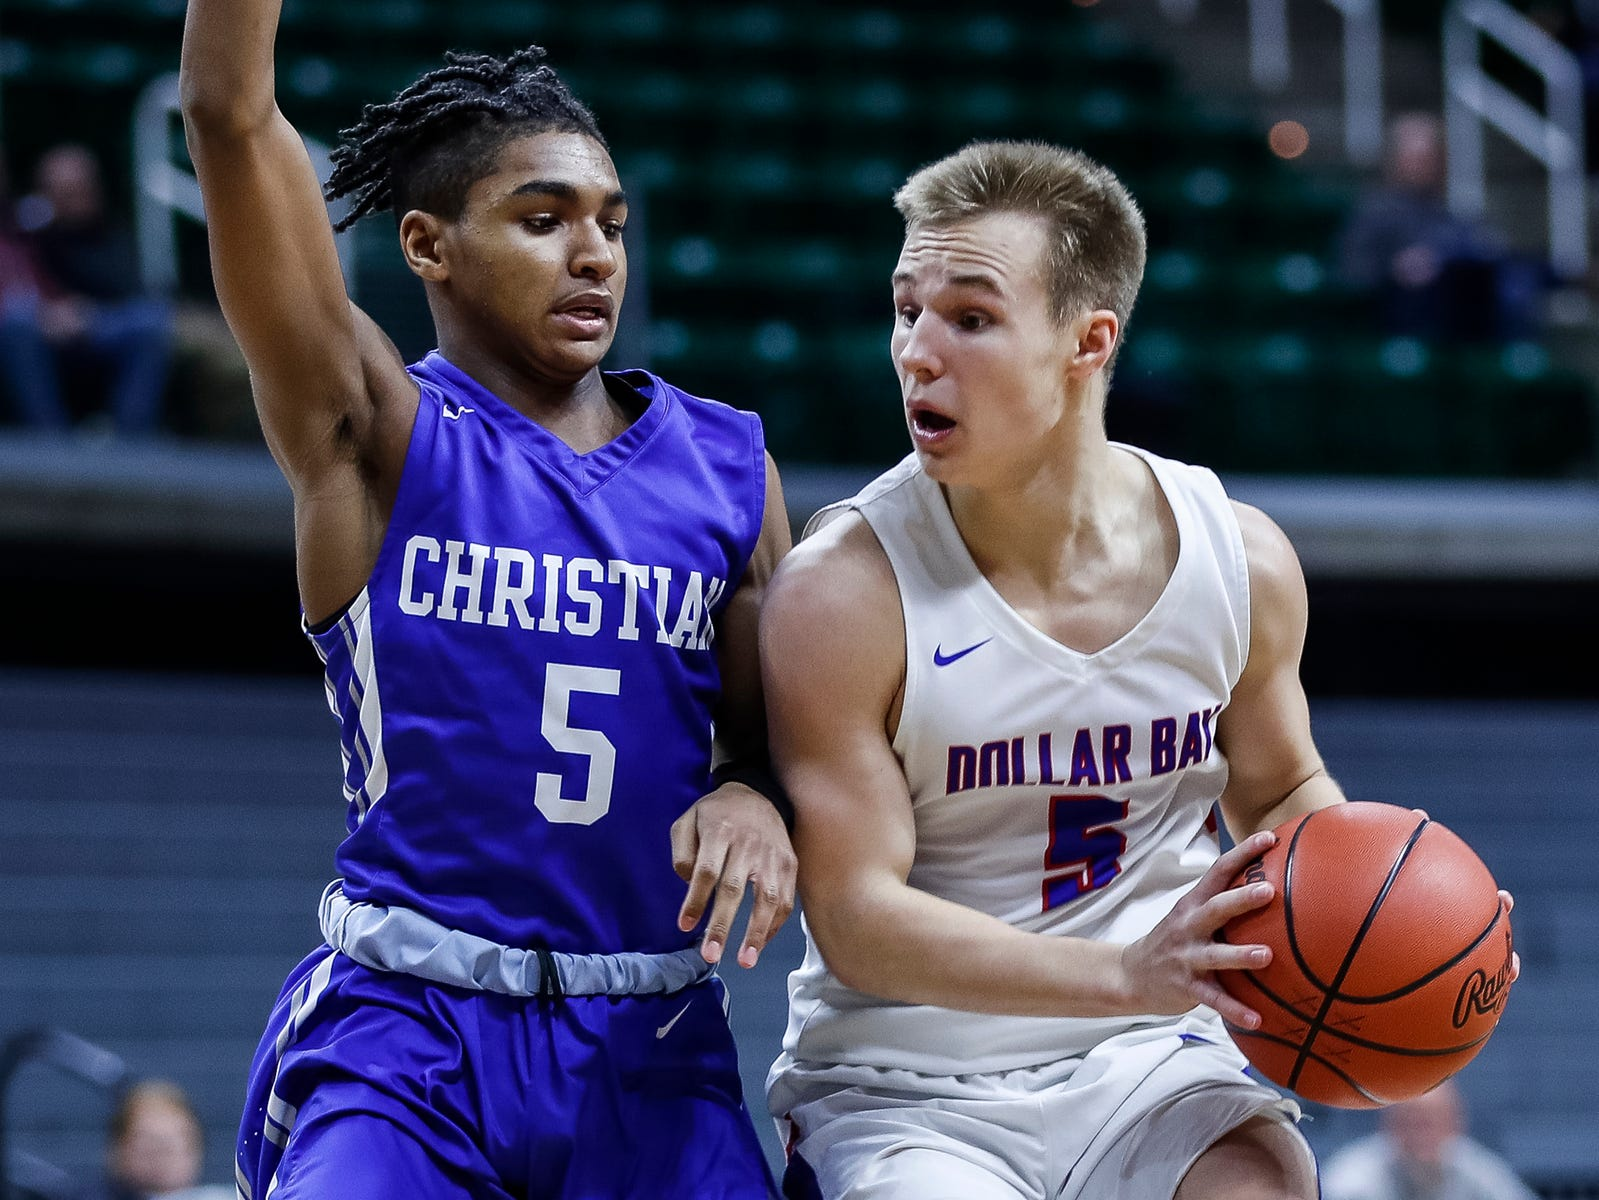 Southfield Christian's Verian Patrick (5) defends Dollar Bay's Brendan LeClaire (5) during the first half of MHSAA Division 4 semifinal at the Breslin Center in East Lansing, Thursday, March 14, 2019.